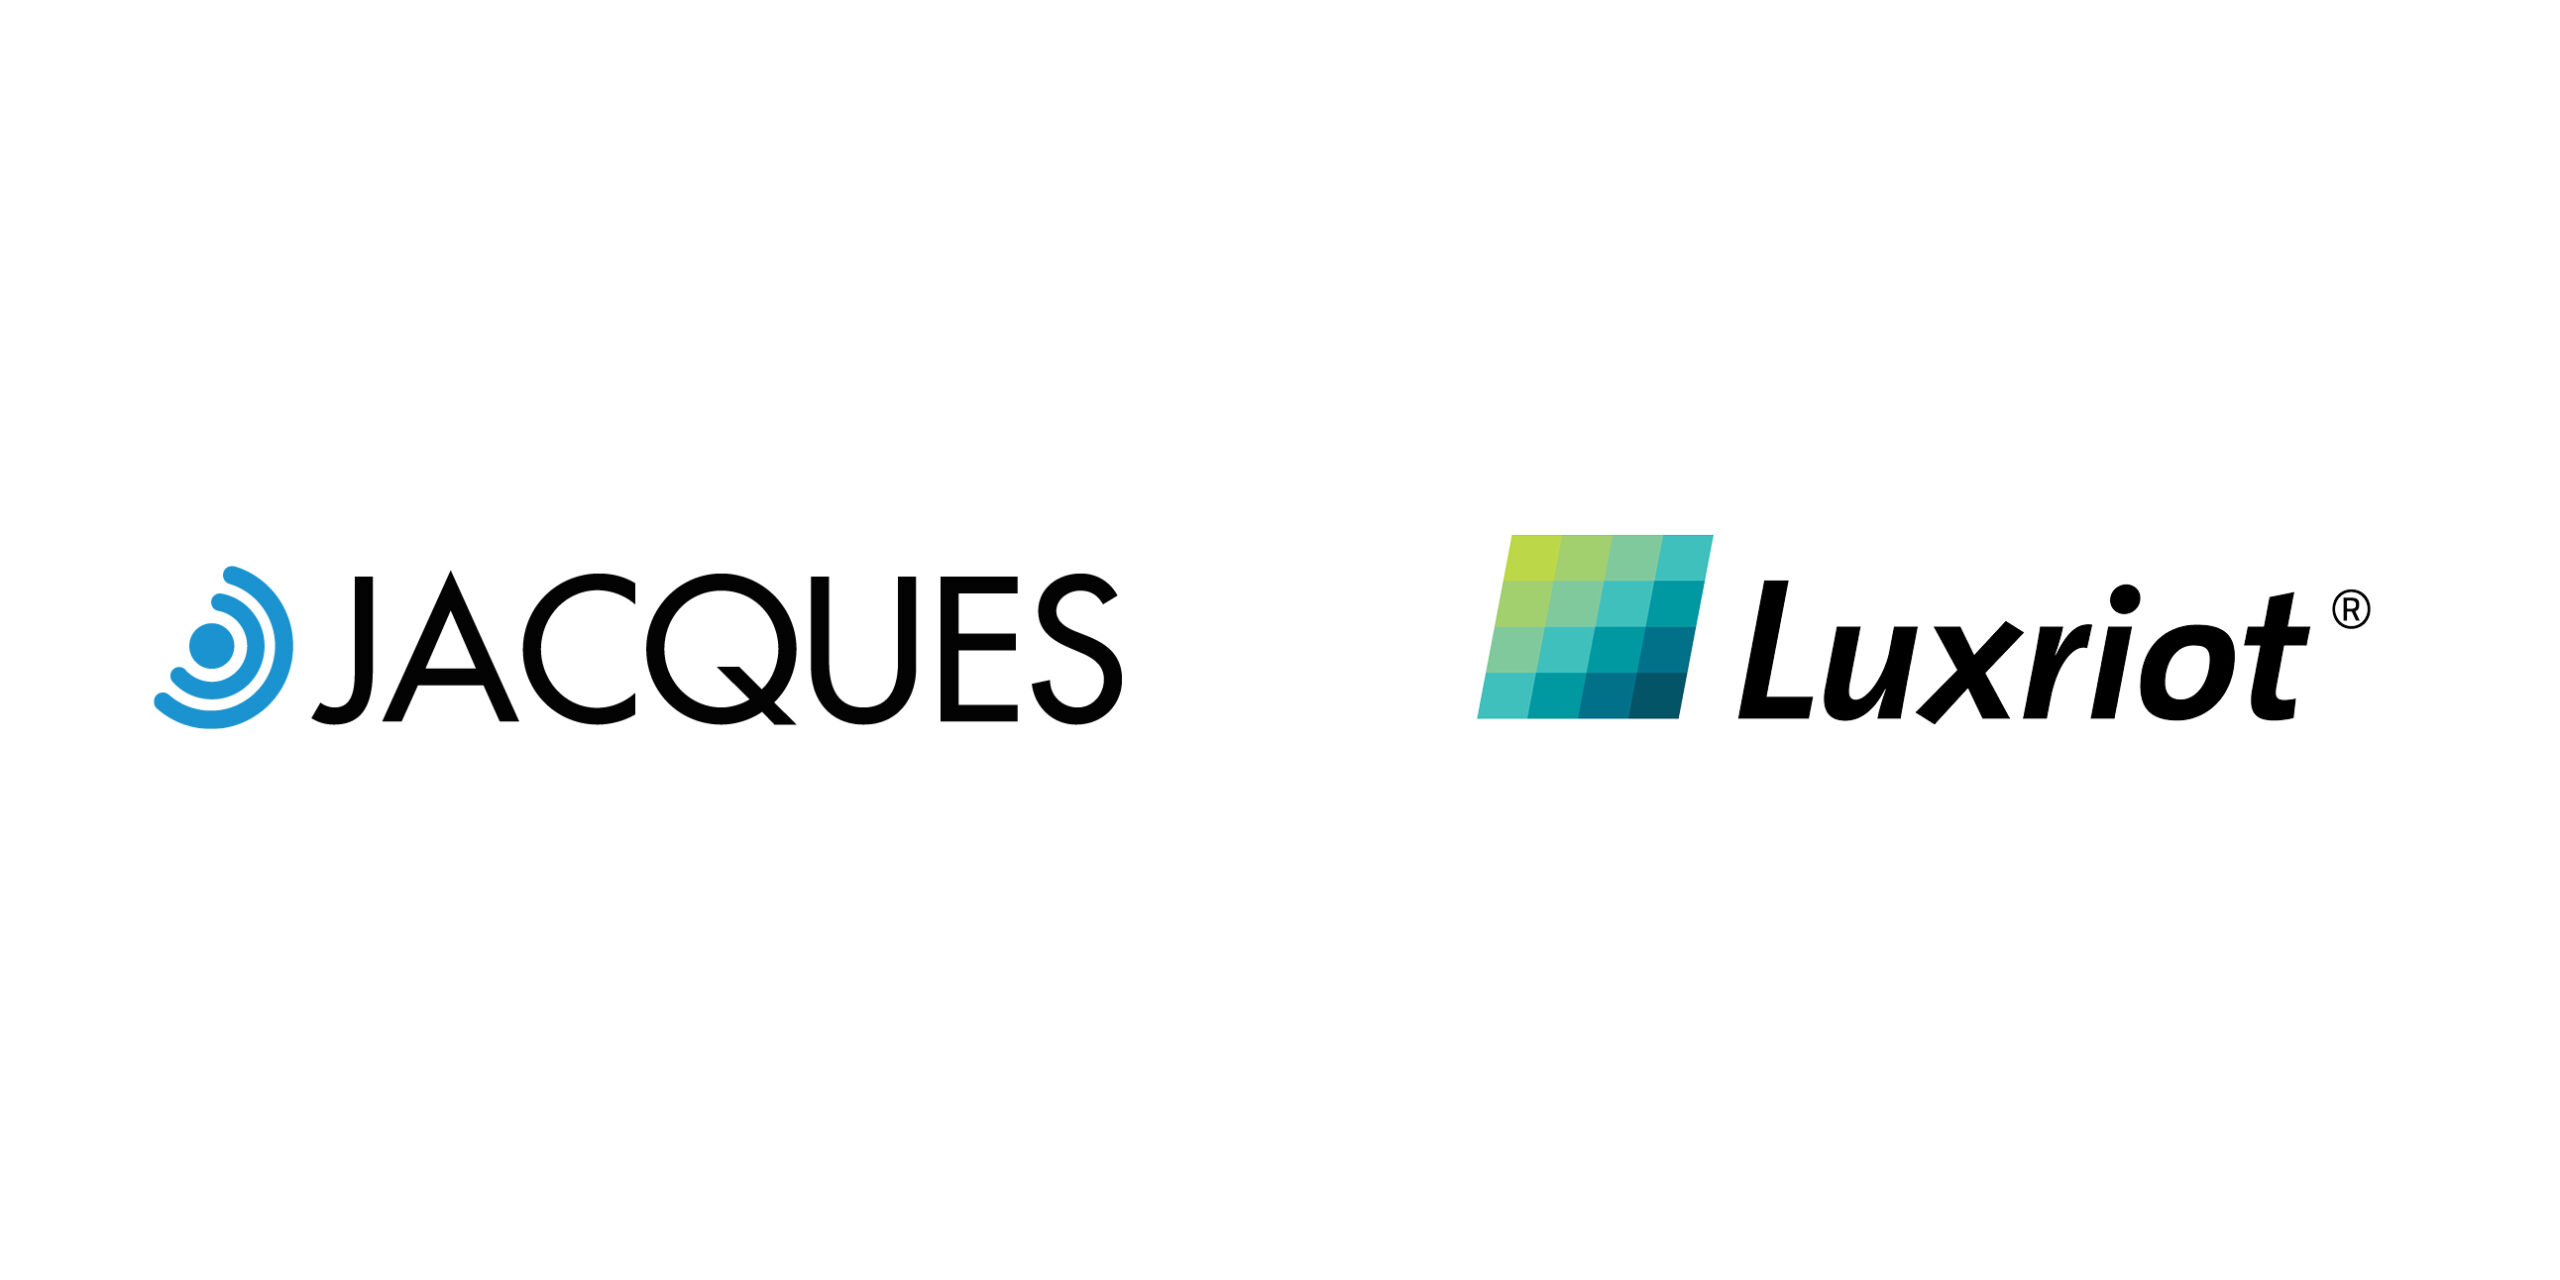 Jacques And Luxriot Announce Integration